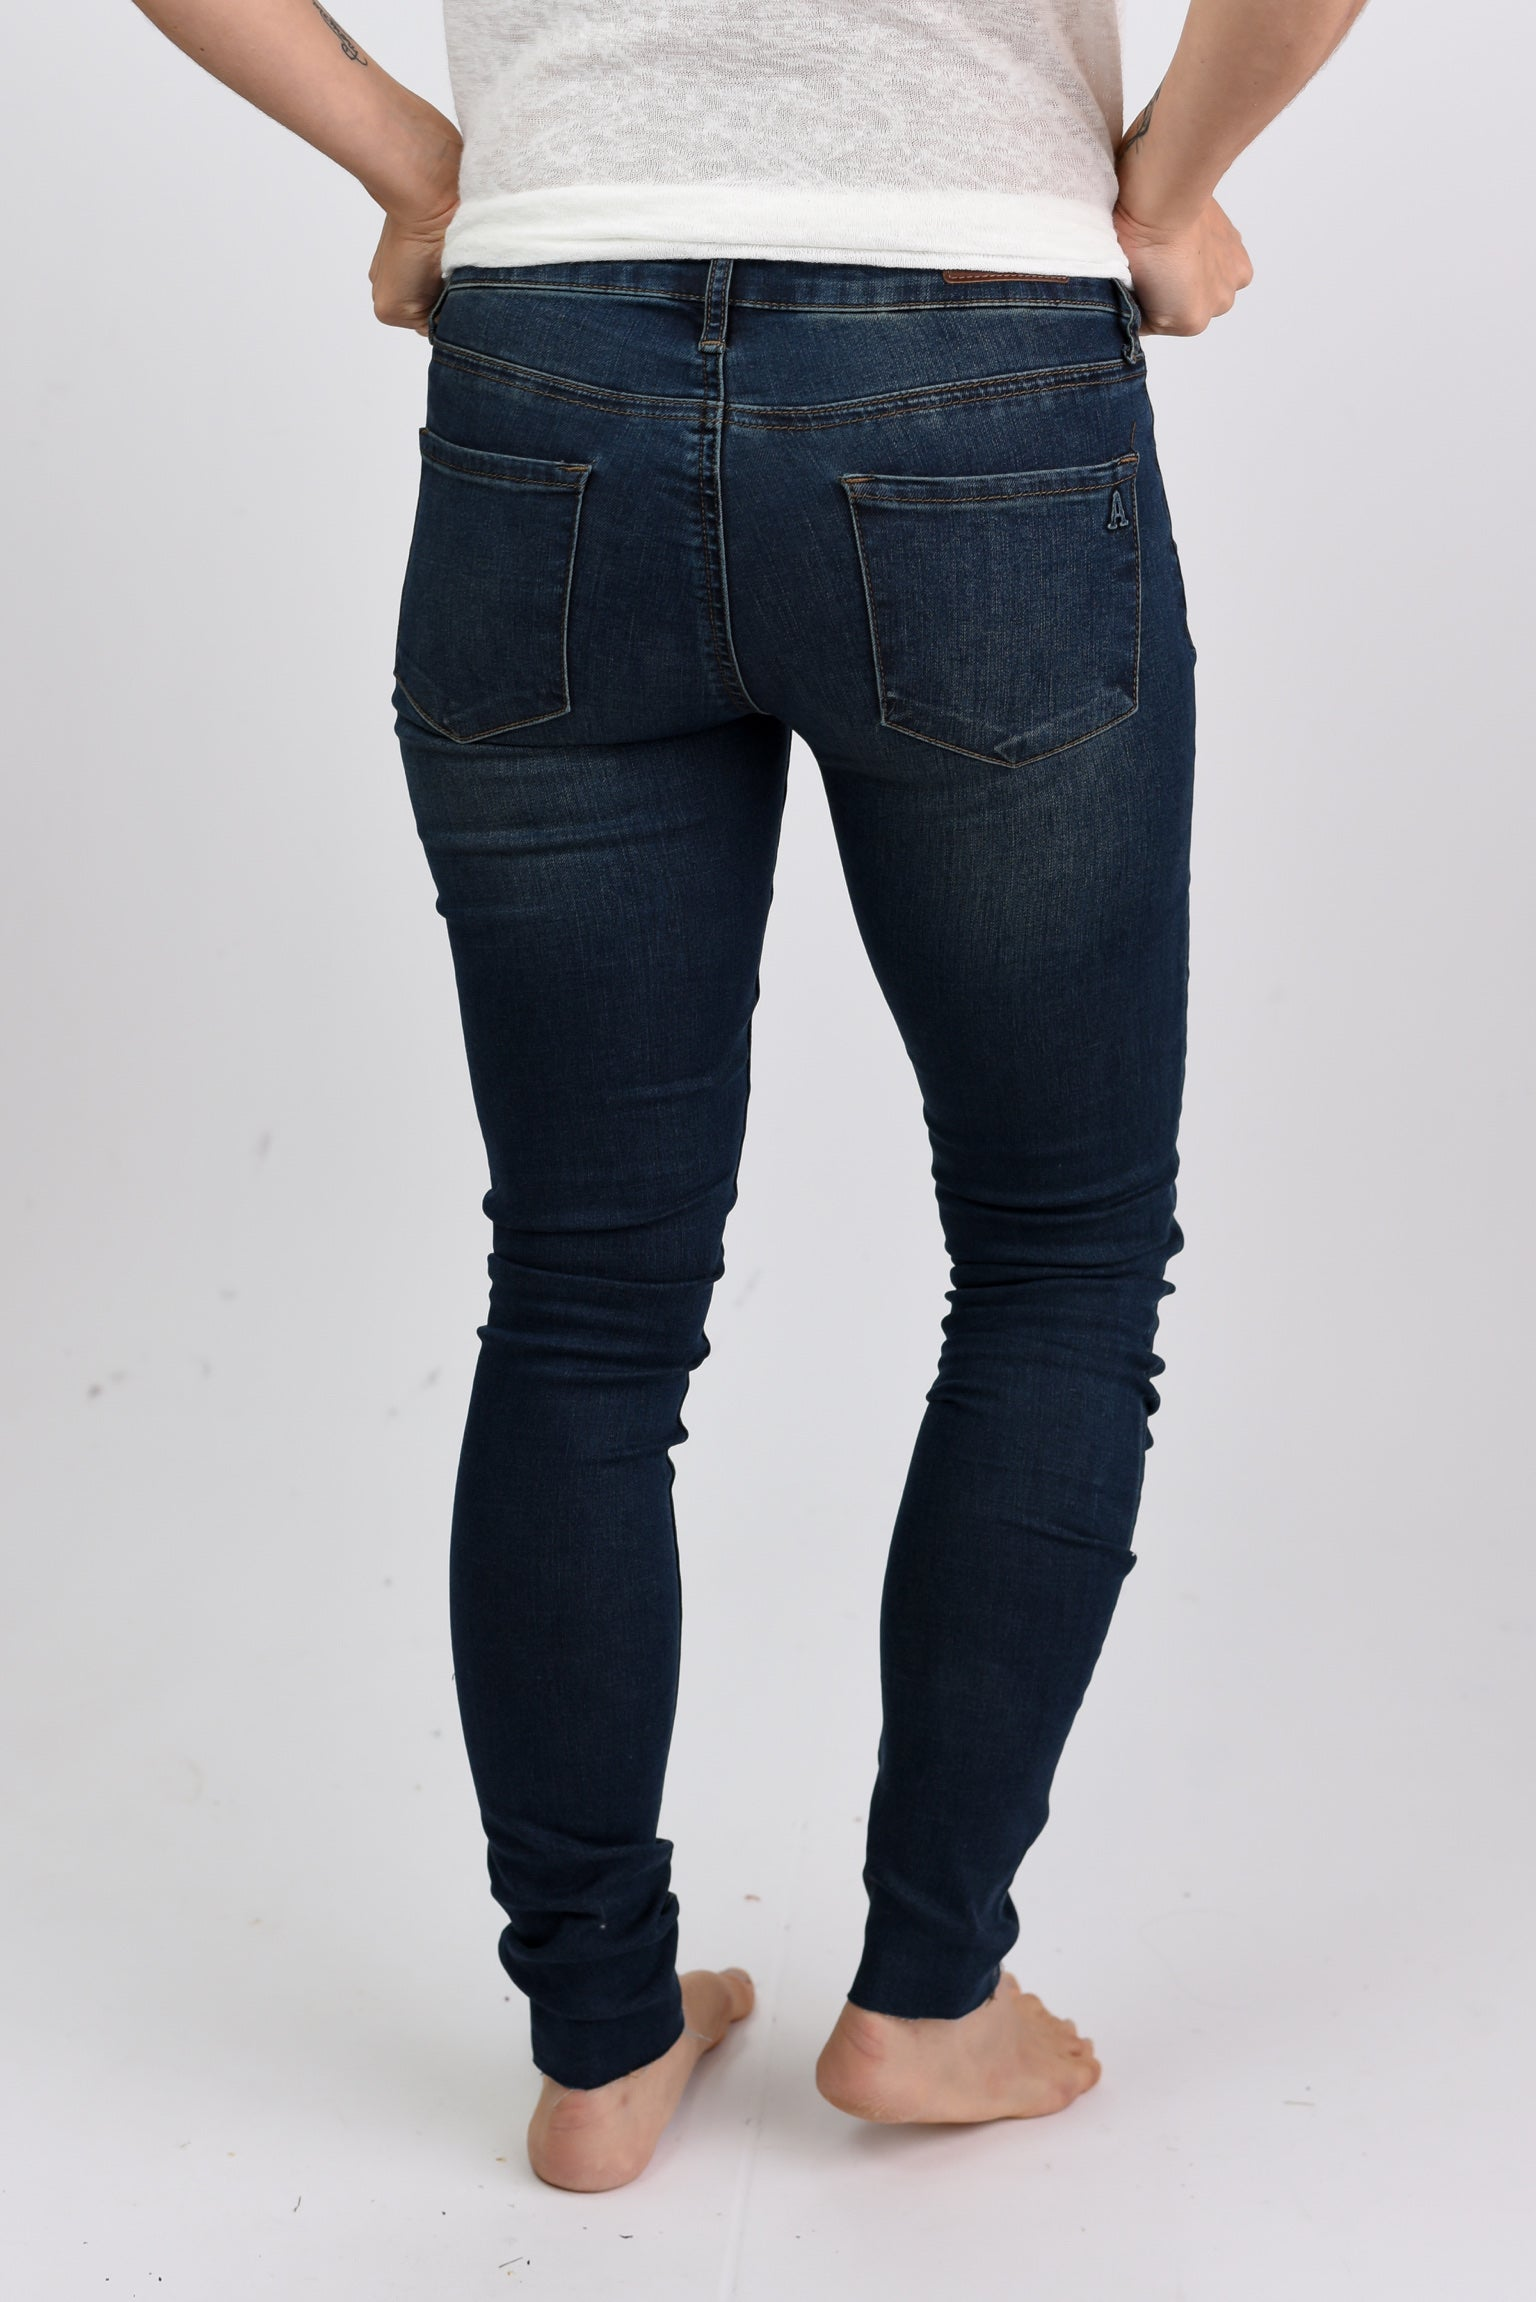 Make No Apologies Open Hem Skinny Jeans